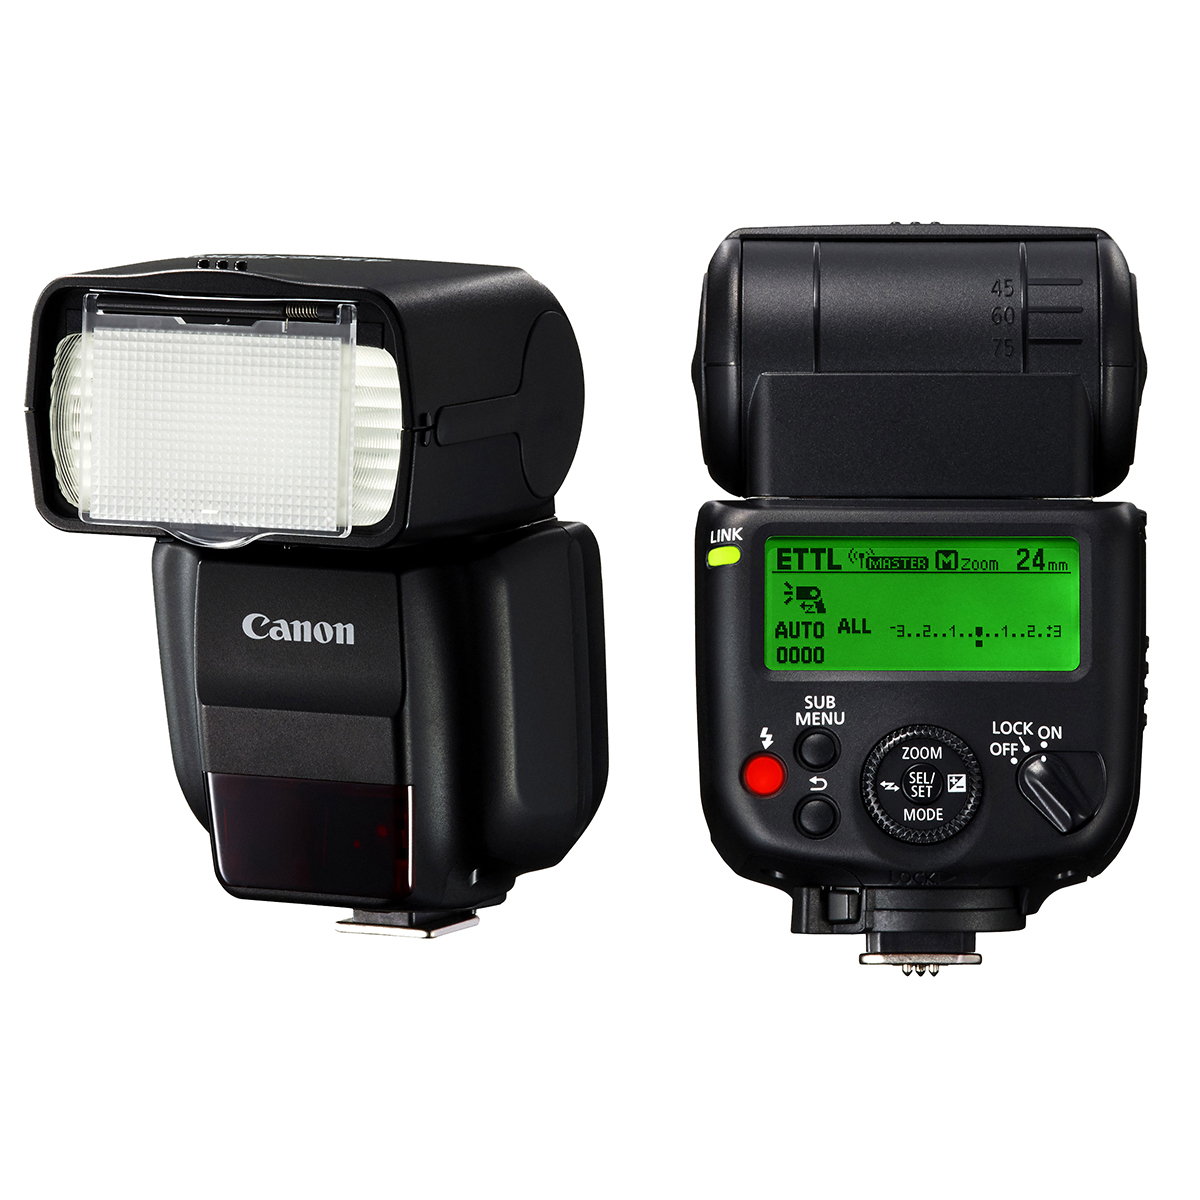 Immagine Canon Flash Speedlite 430EX III RT